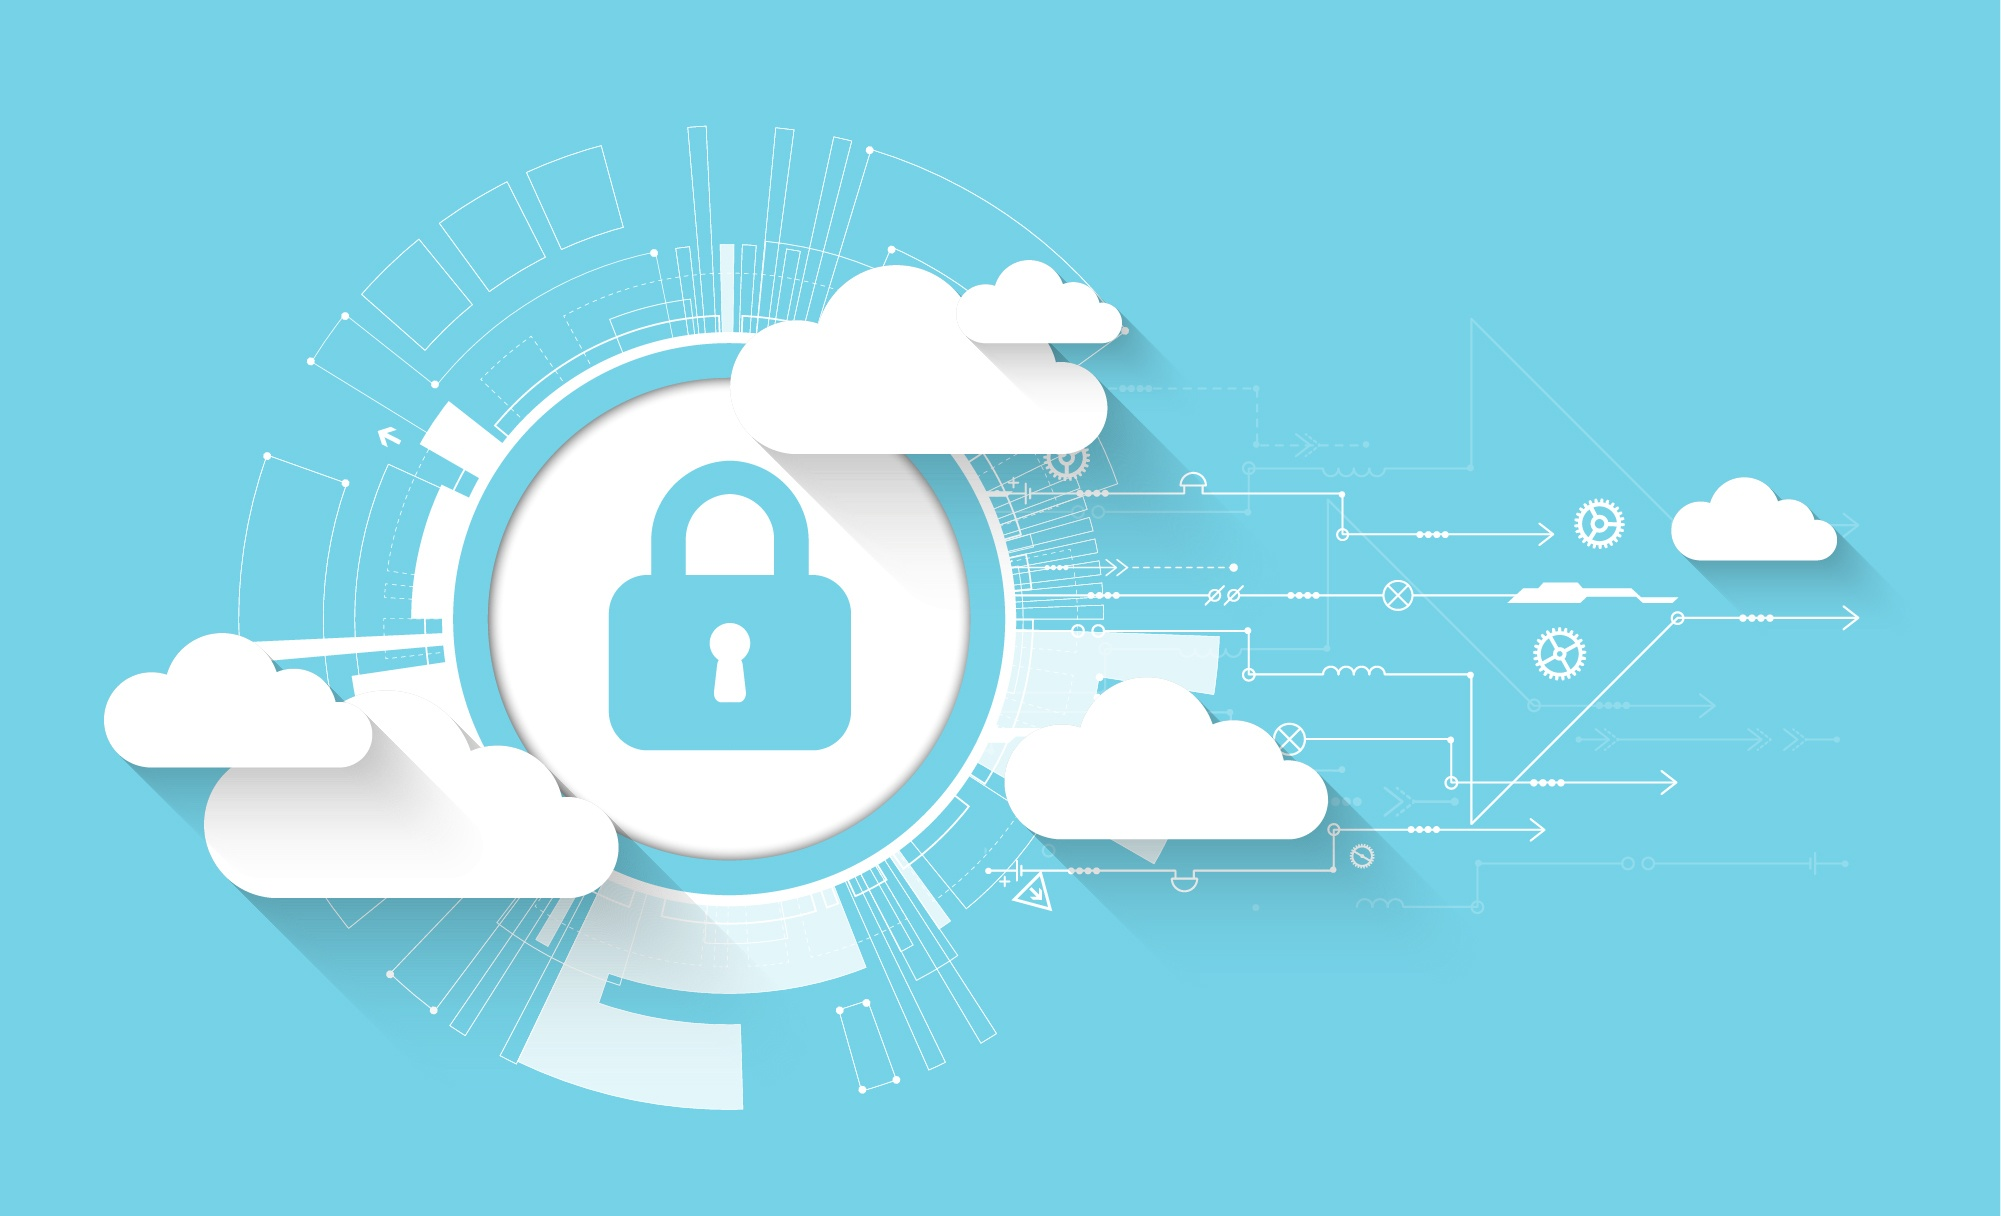 cloud-technology-security-privacy.jpg